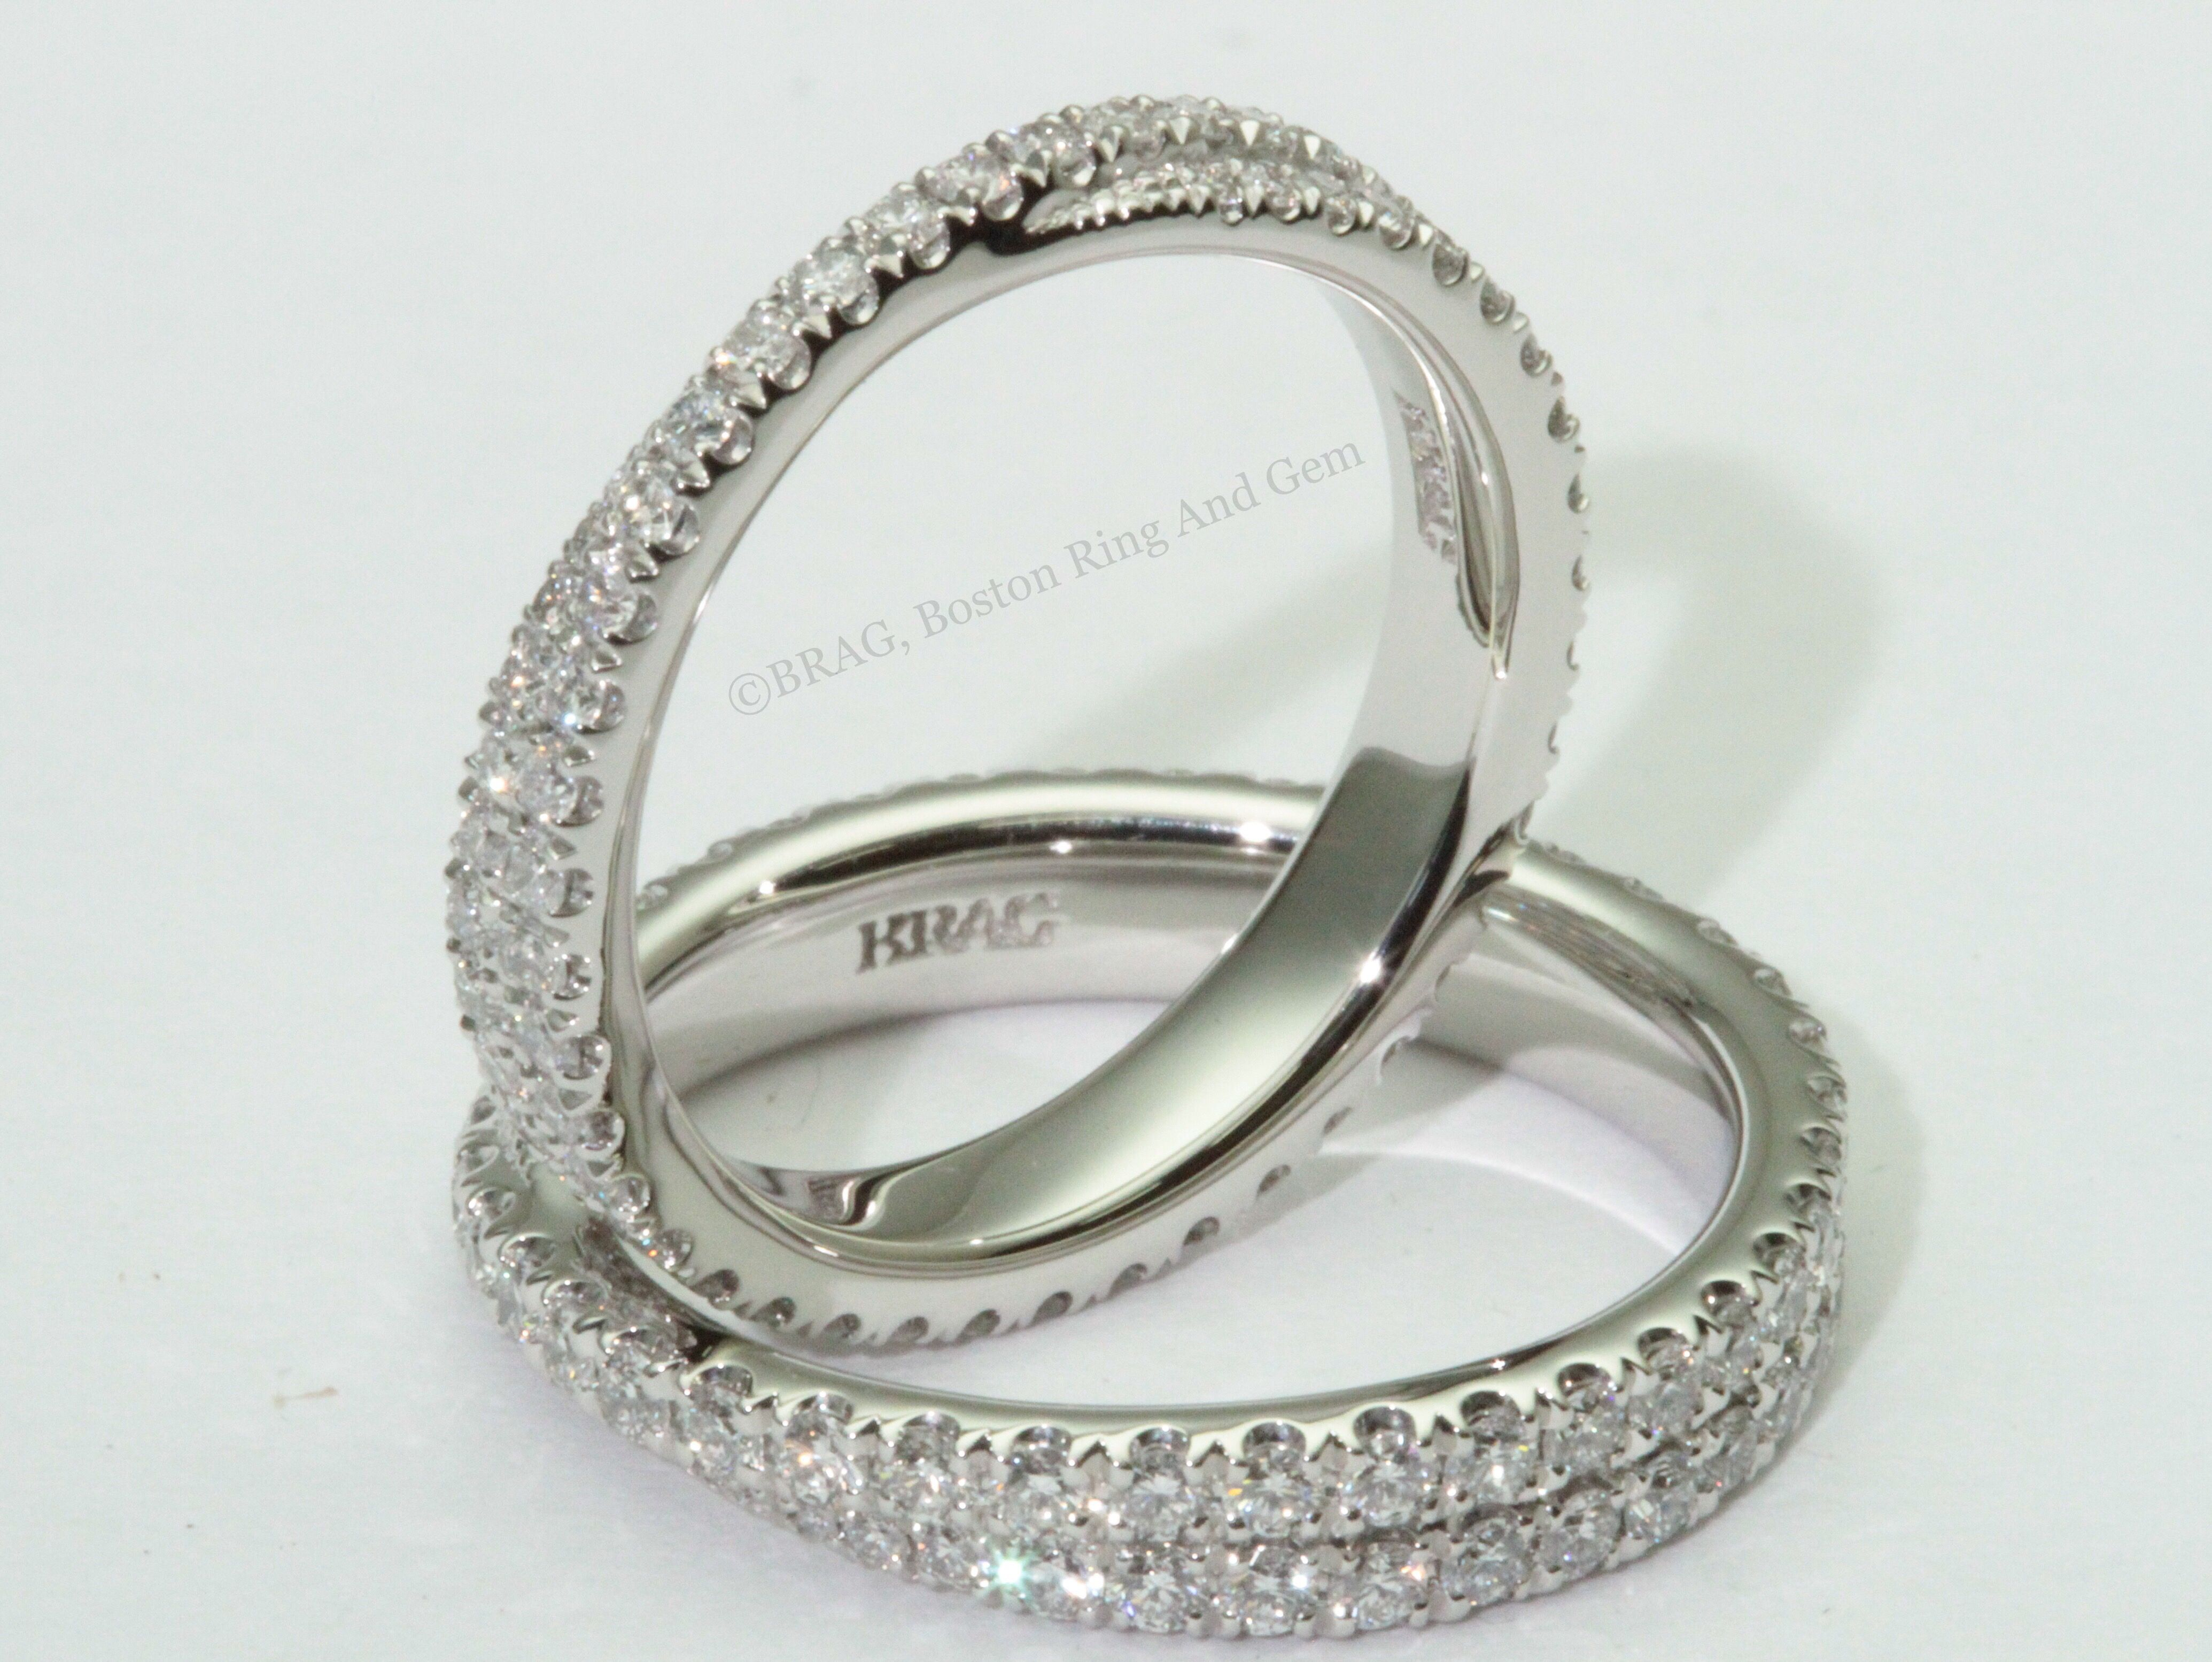 Two Rings In One Overlap Twist For One Look Then Spin It Around For A Double Stacked Eternity Diam Wedding Rings Wedding Rings For Women Eternity Band Diamond